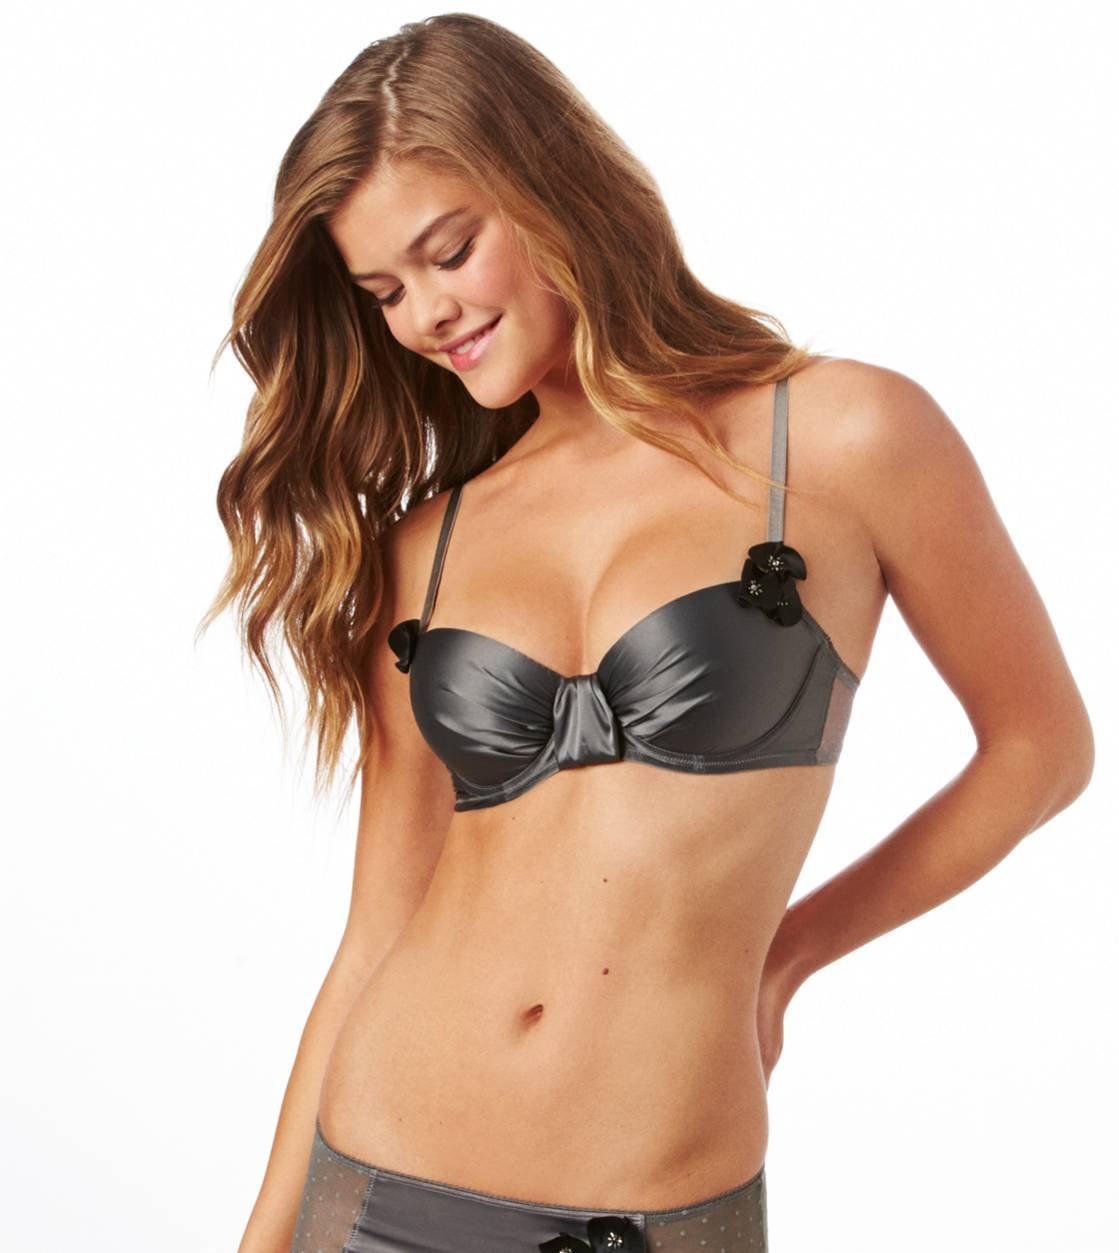 Pewter Holly Floral Applique Pushup Bra